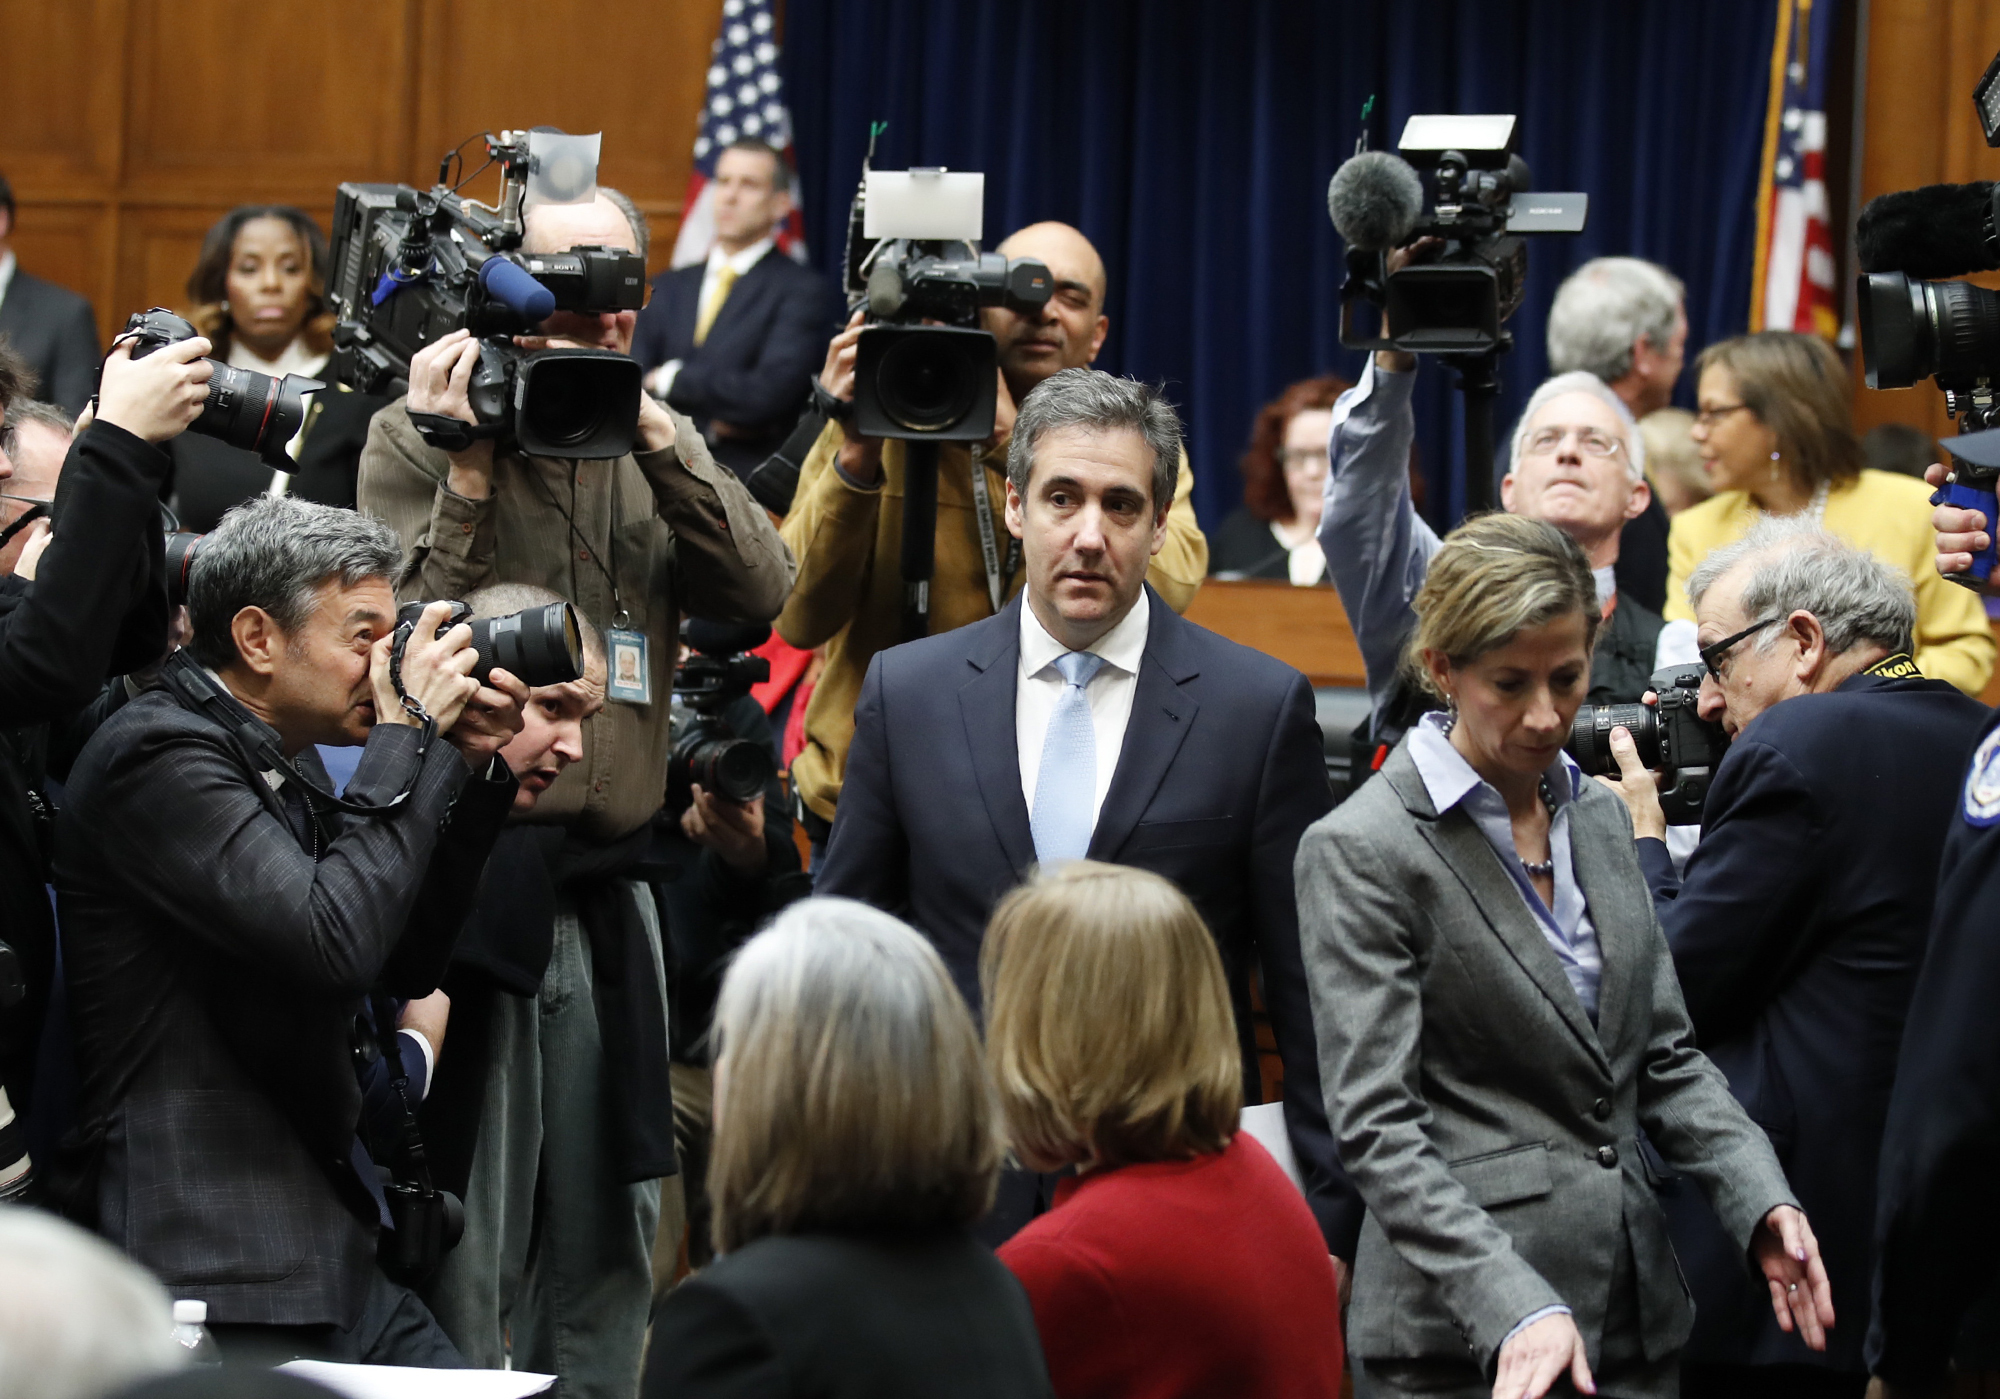 Michael Cohen, President Donald Trump's former personal lawyer, arrives to testify before the House Oversight and Reform Committee on Capitol Hill, Feb. 27, 2019, in Washington.